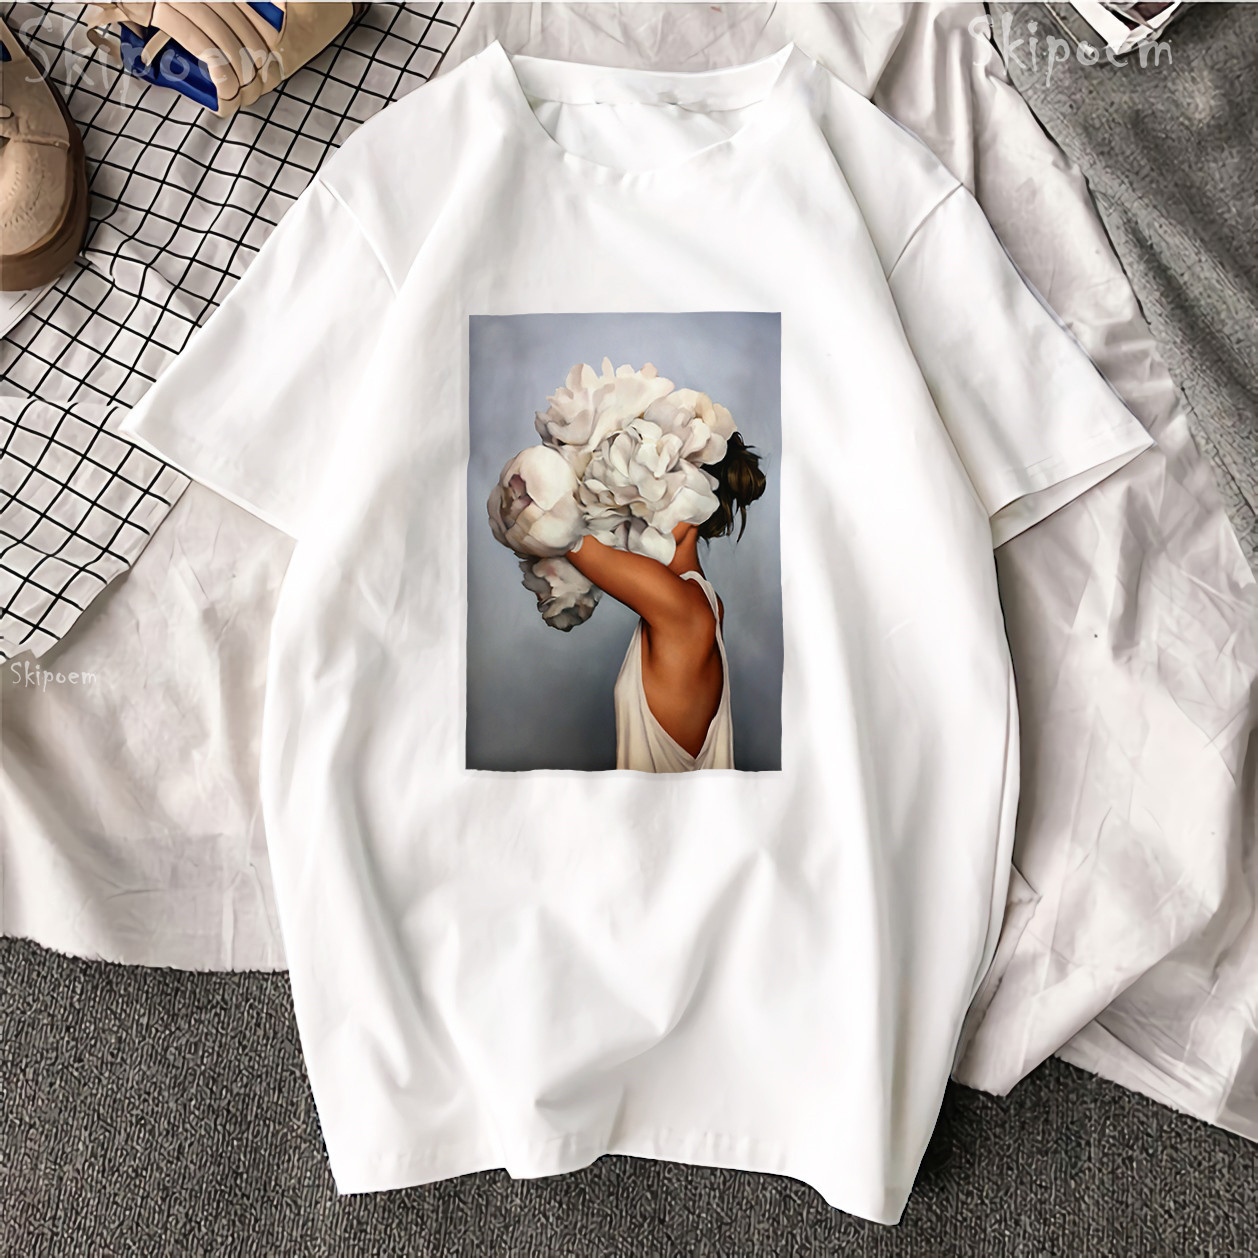 New Cotton Aesthetics T shirt Sexy Flowers Feather Printed Fashion Casual Couple T Shirt 8